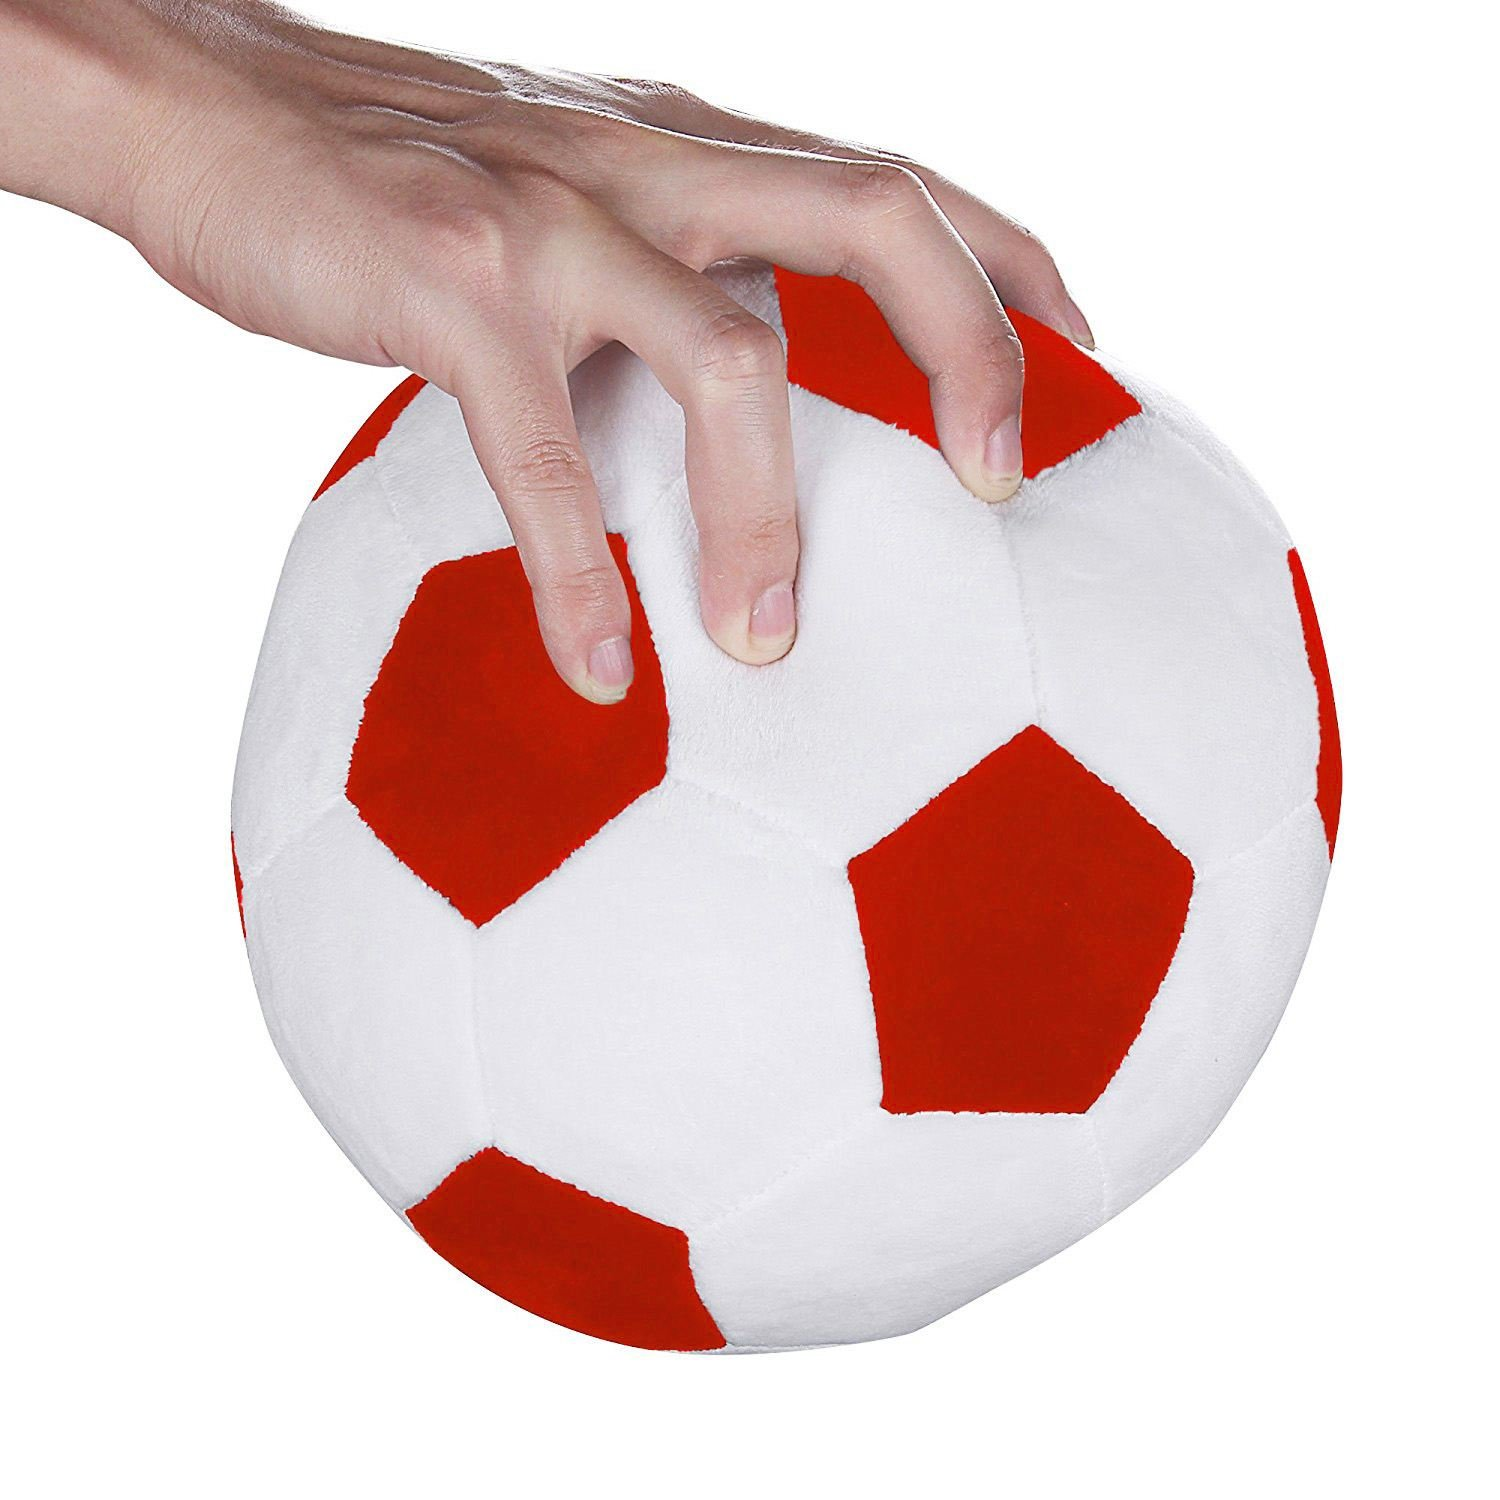 SODIAL Soccer Sports Ball Throw Pillow Stuffed Soft Plush Toy for Toddler Baby Boys Kids Gift Red 8 inch L X 8 inch W X 8 inch H